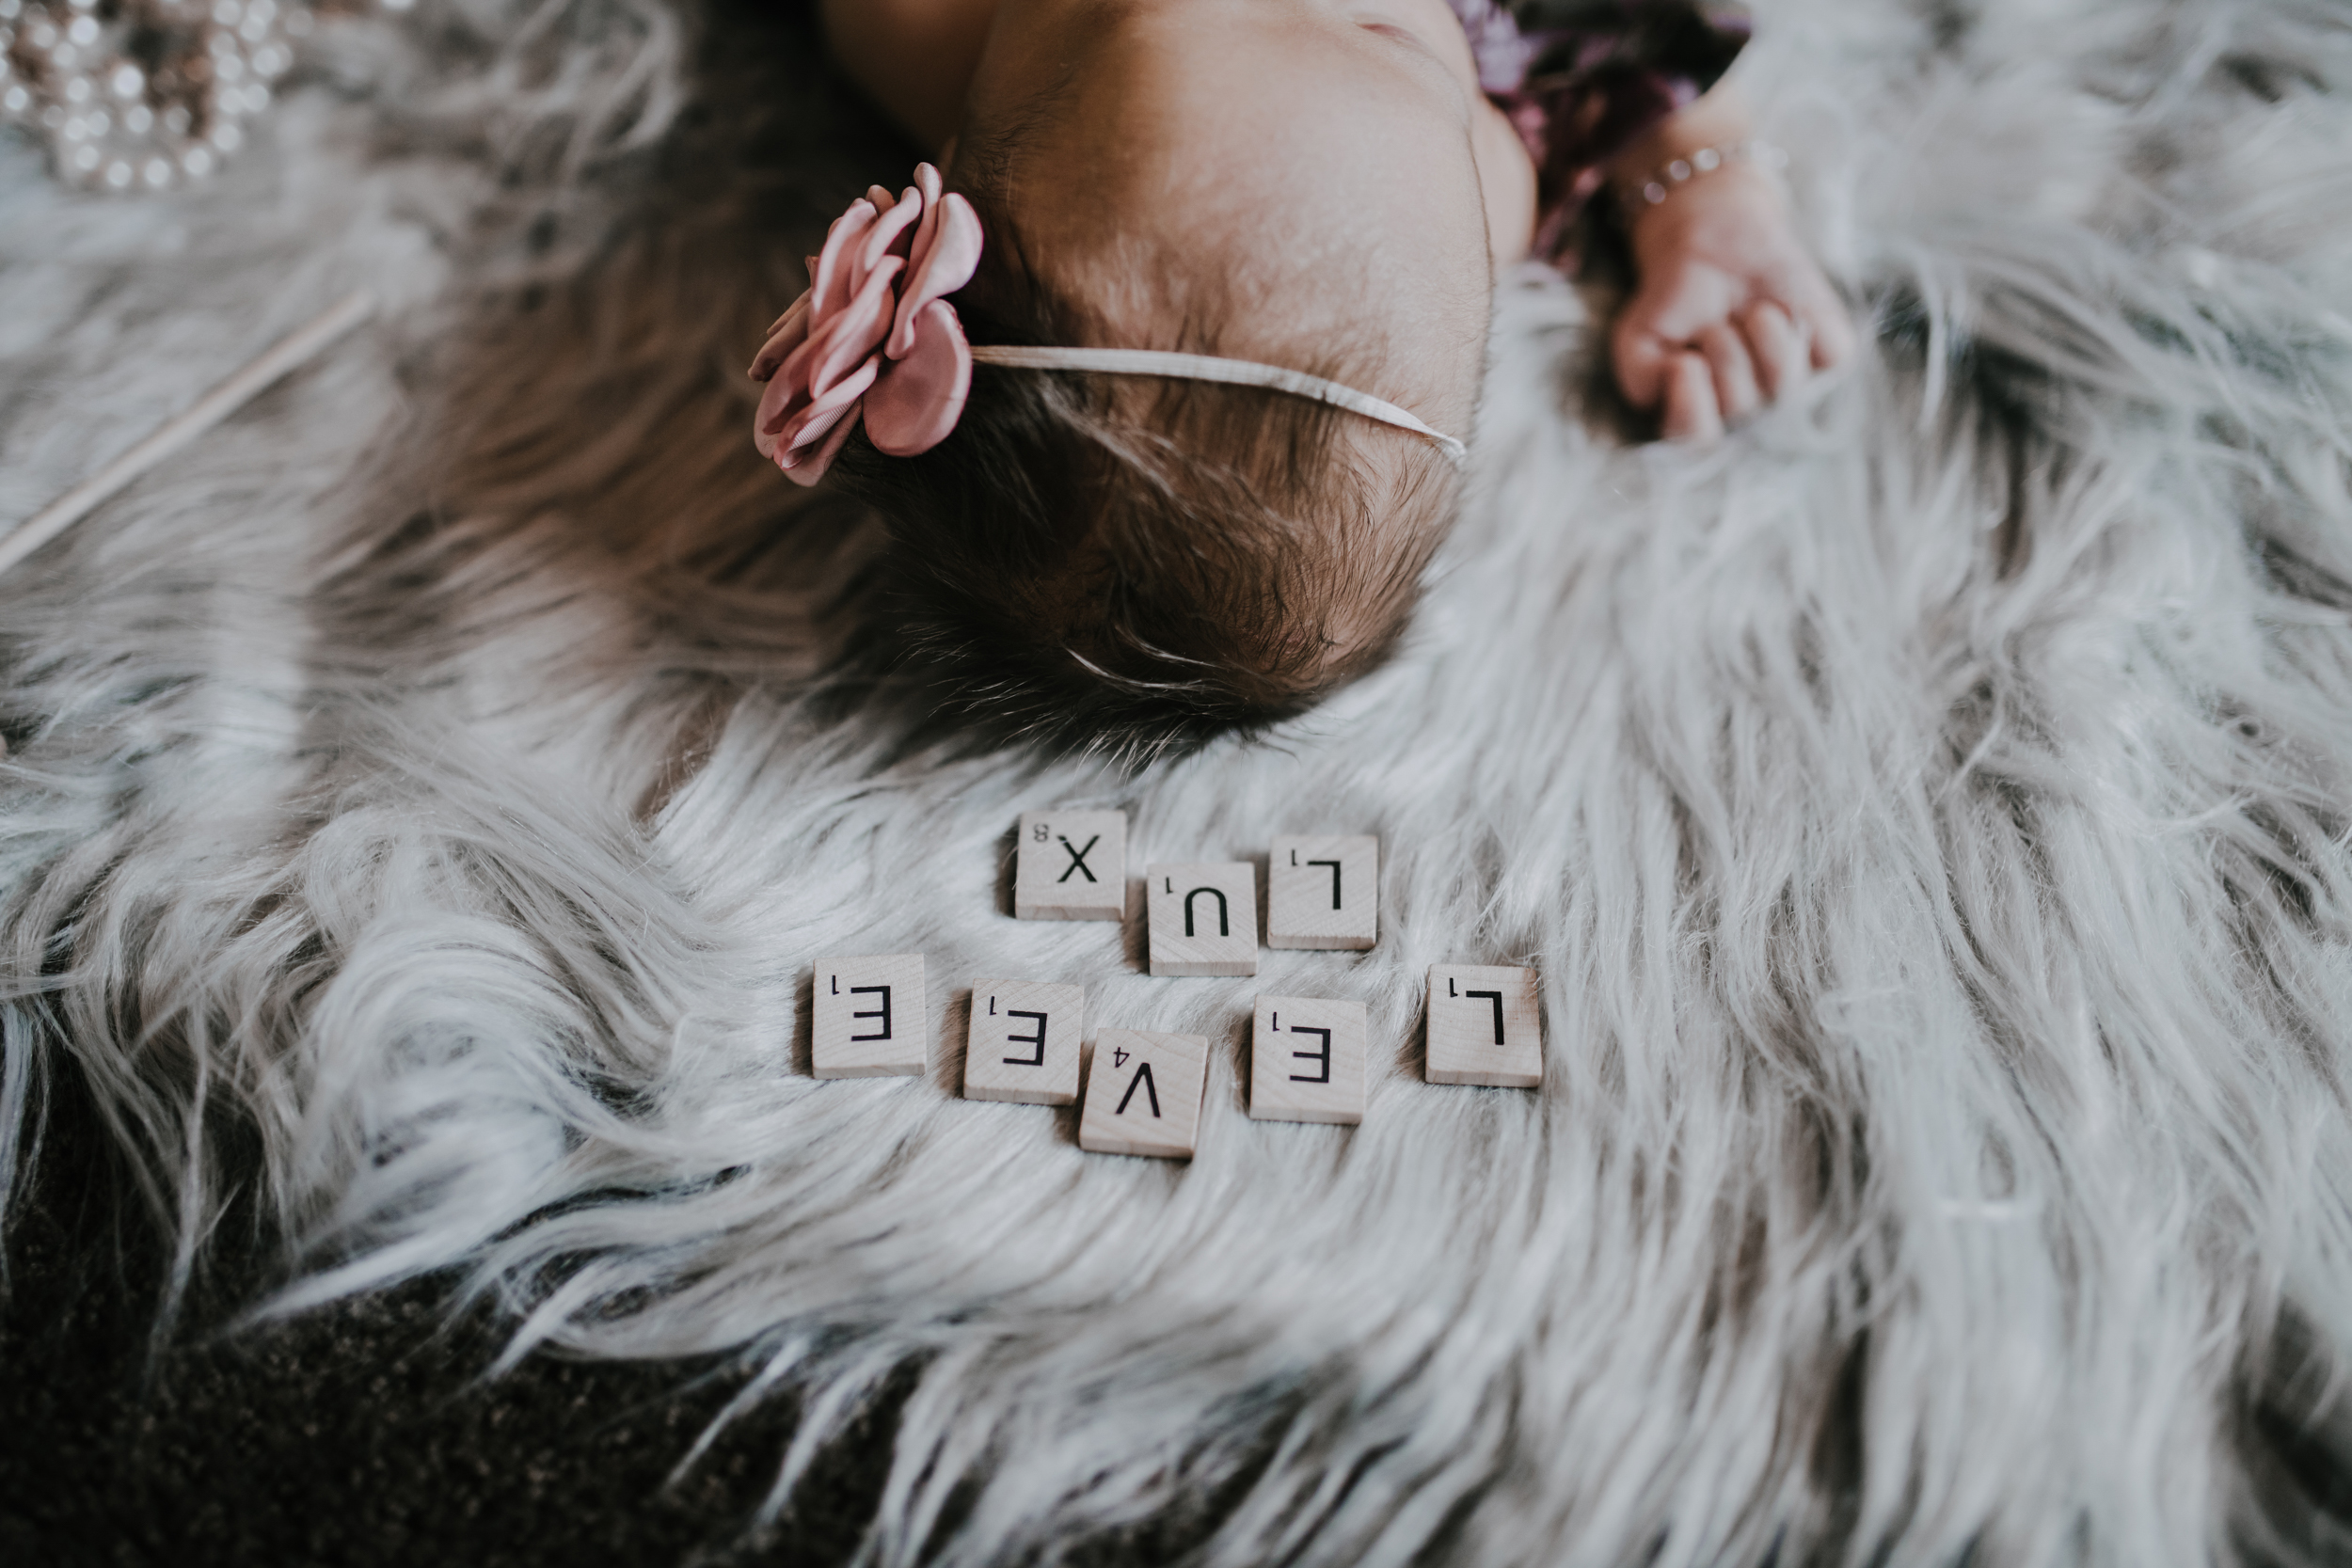 Baby name with scrabble blocks